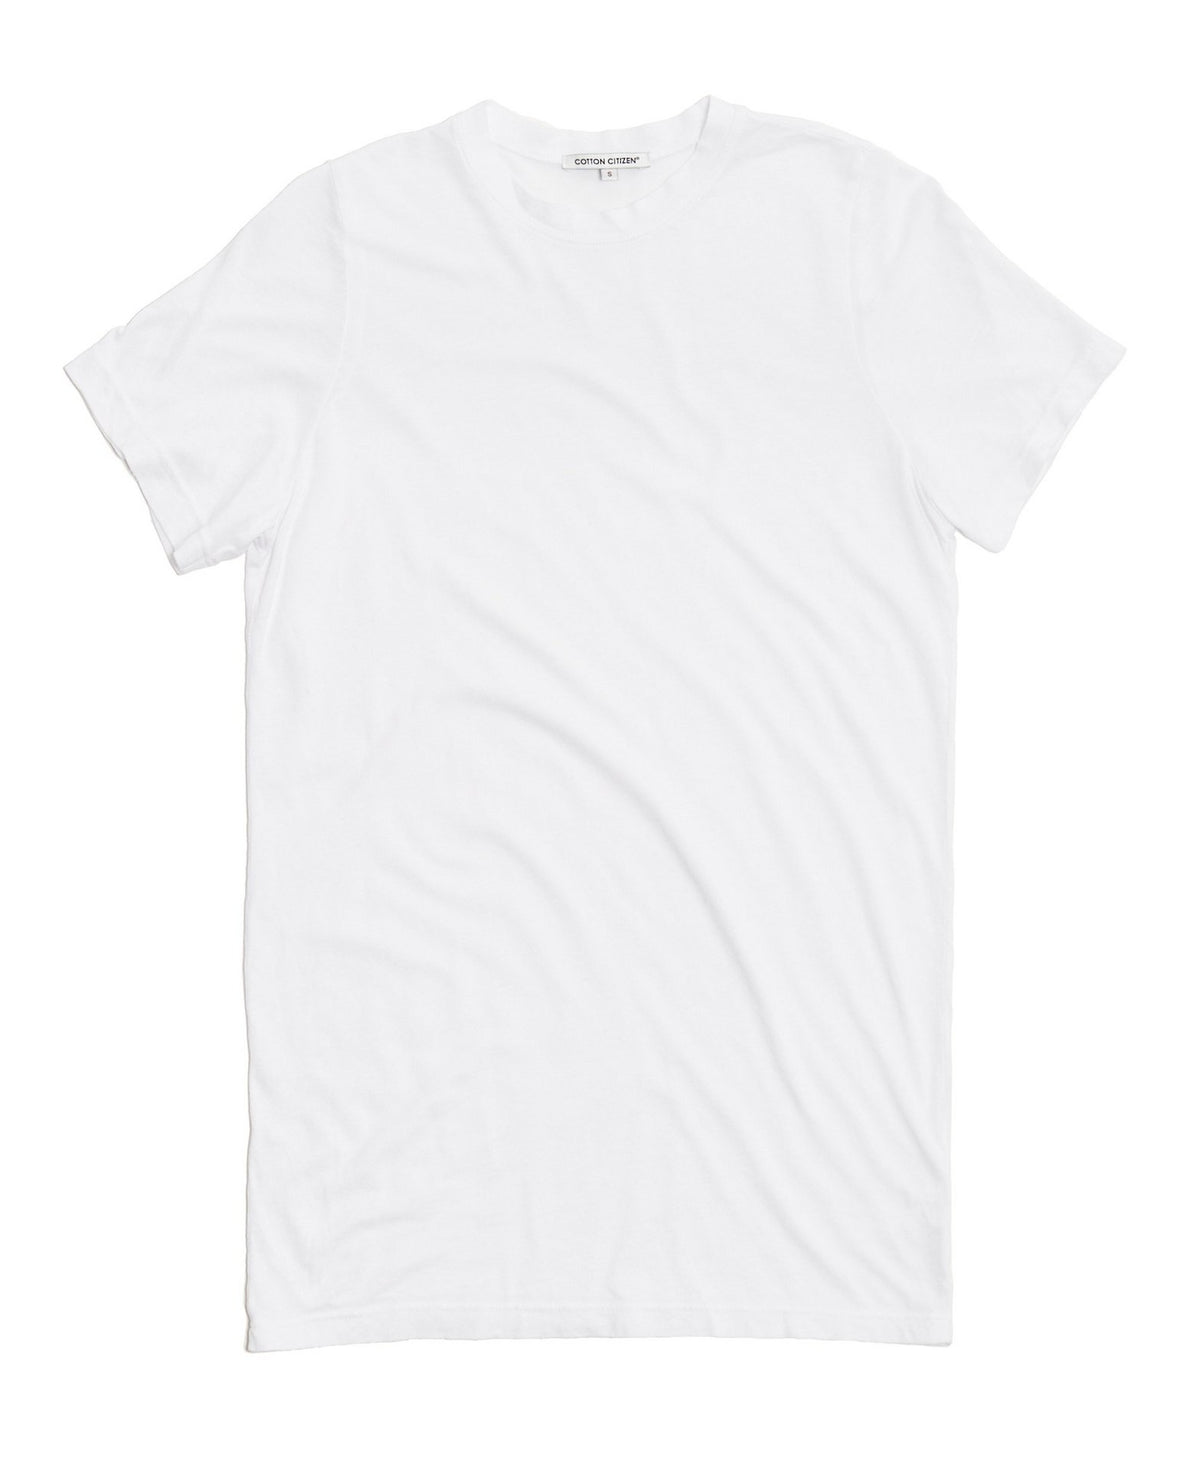 Women's Classic Crew Tee White -  THE BOX BOUTIQUE